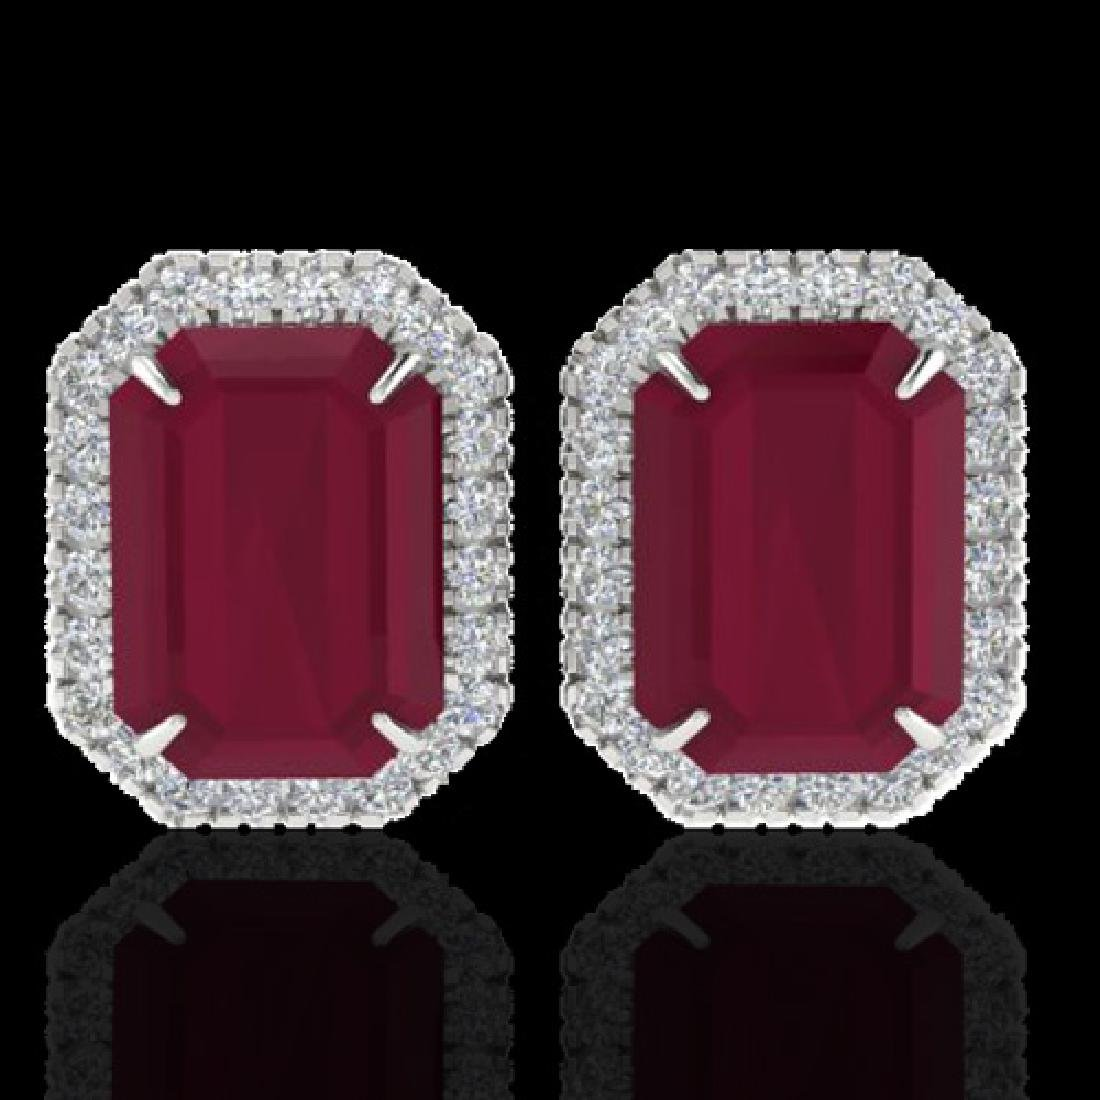 10.40 CTW Ruby And Micro Pave VS/SI Diamond Halo